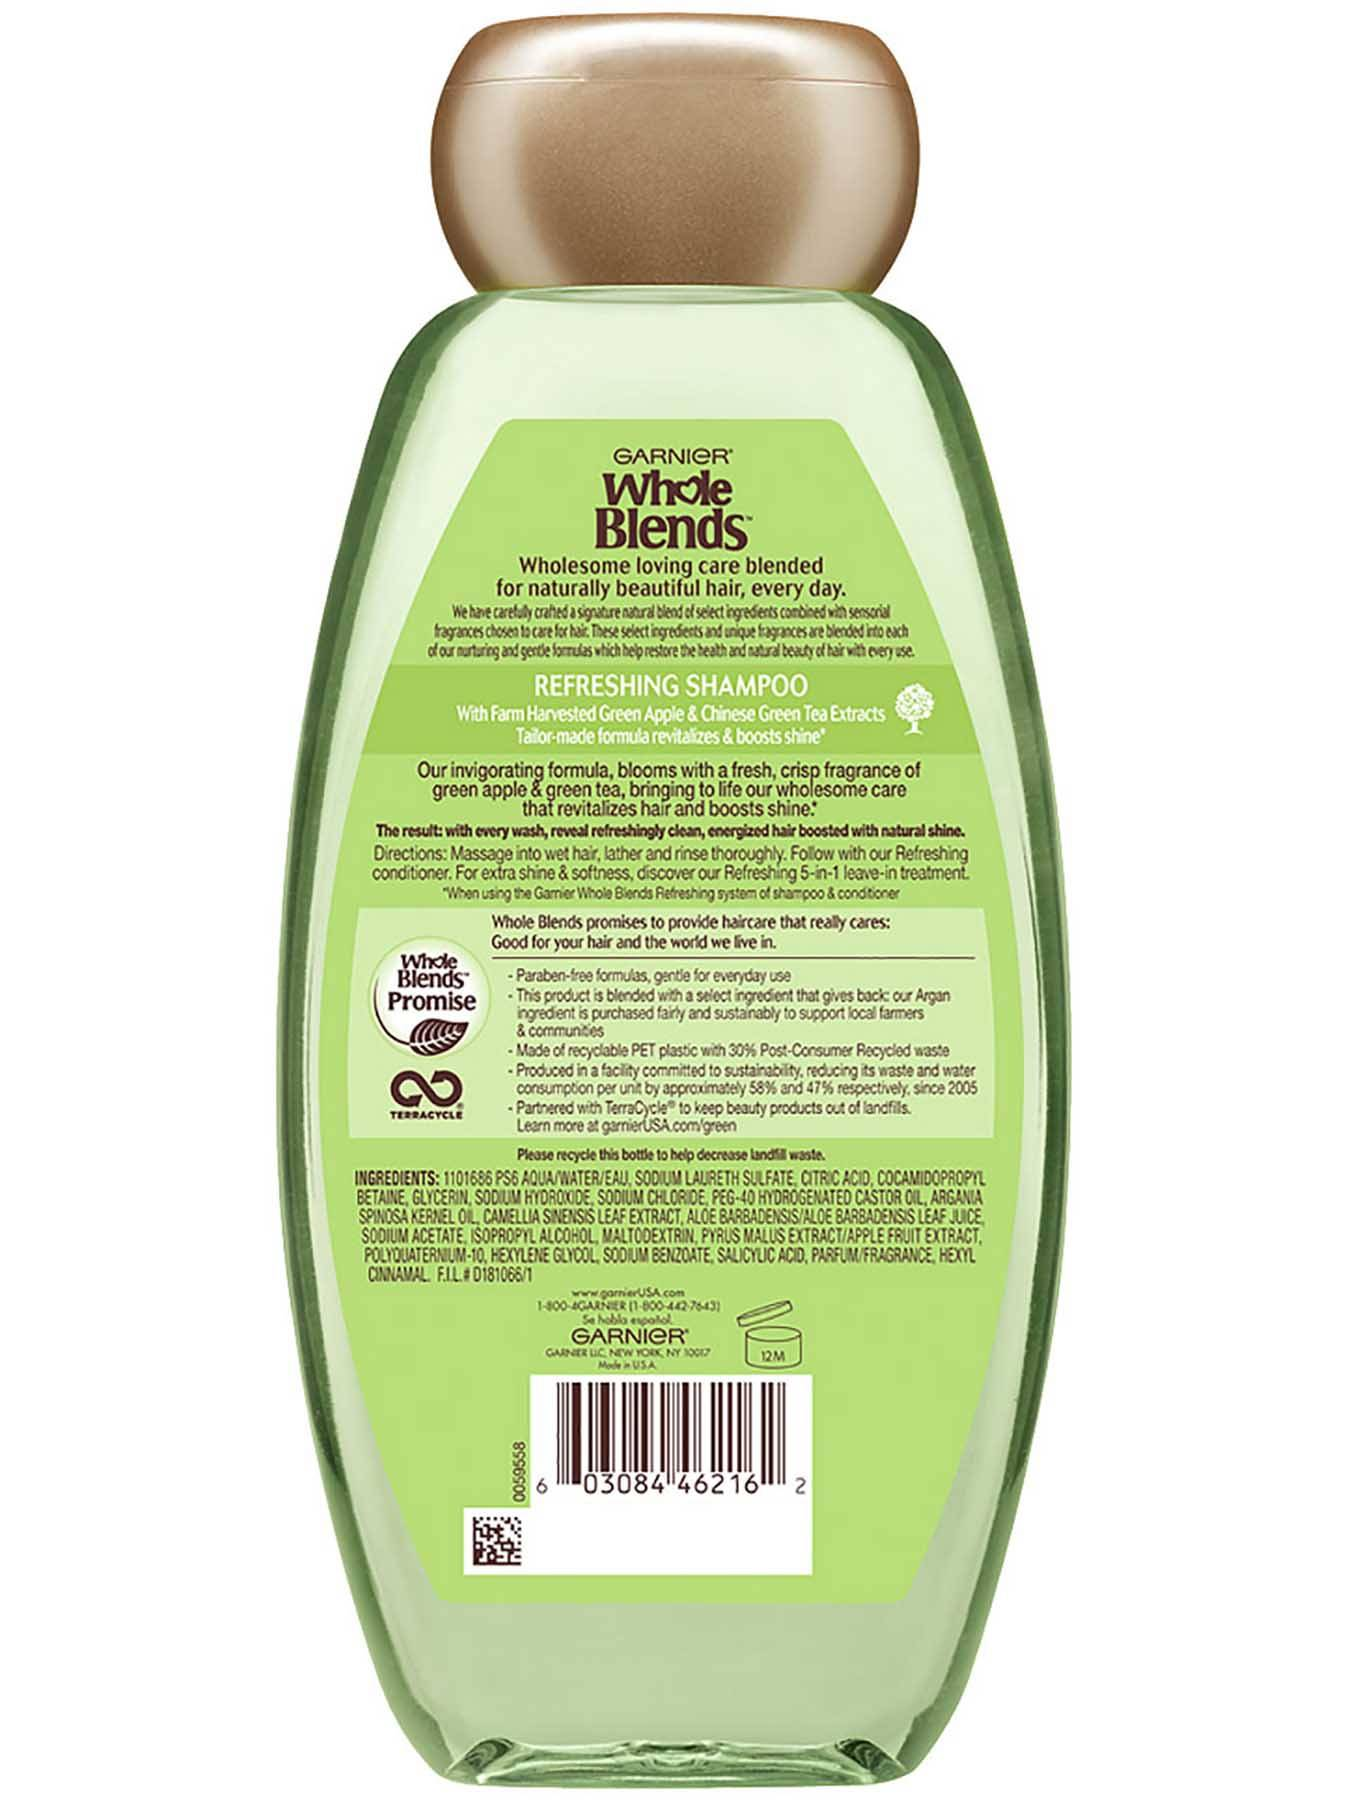 Garnier Whole Blends Refreshing Shampoo Green Apple Green Tea Extracts Back Of Bottle